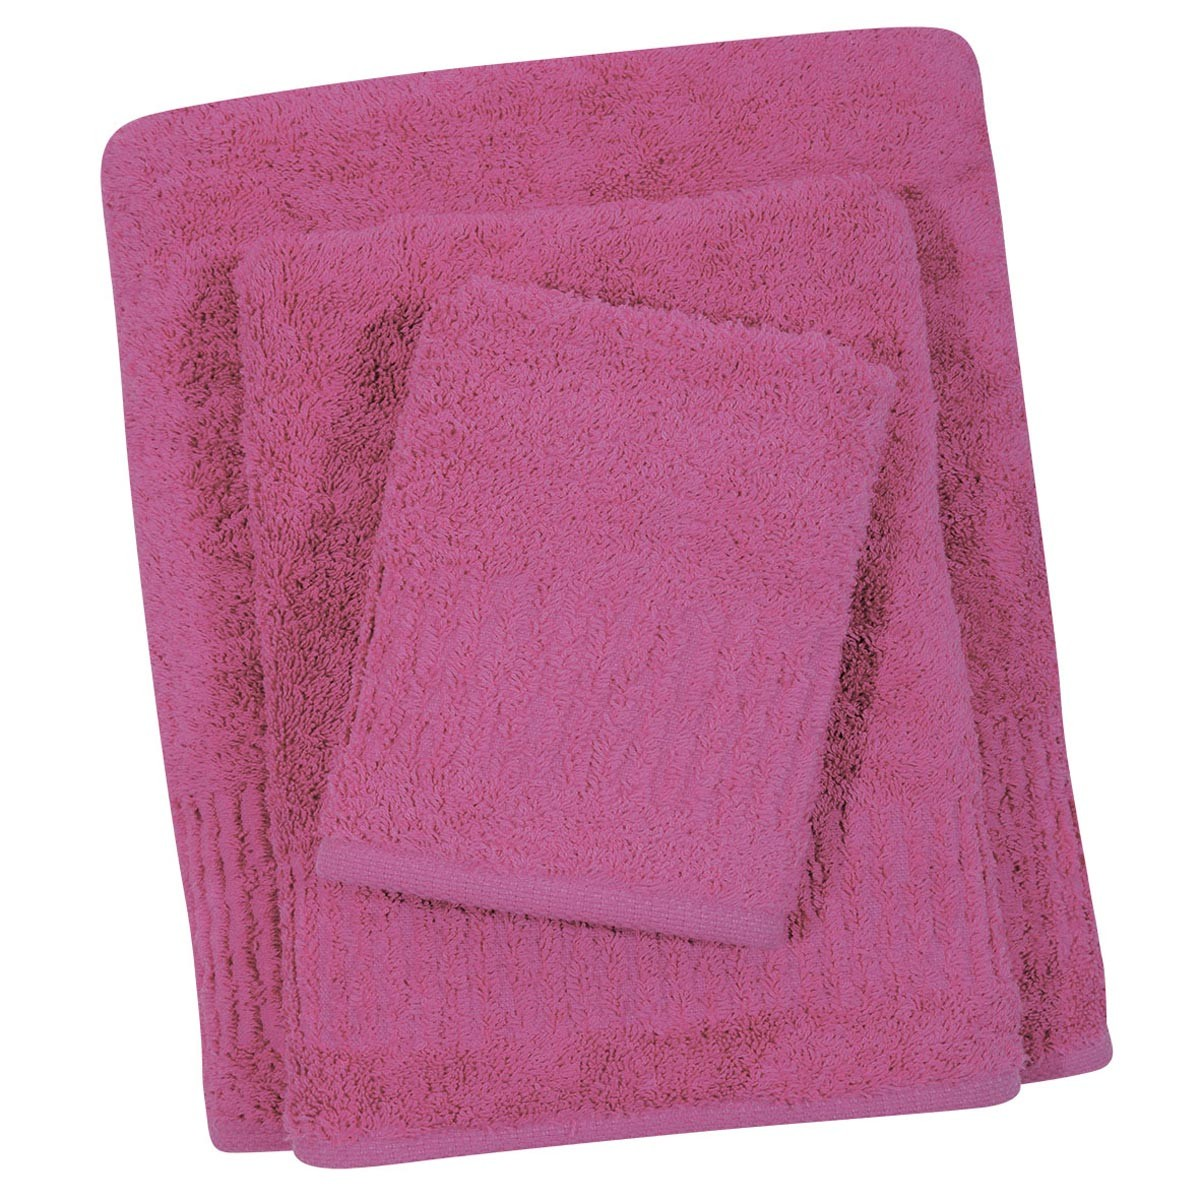 Πετσέτα Σώματος (80x150) Das Home Prestige Towels Colours